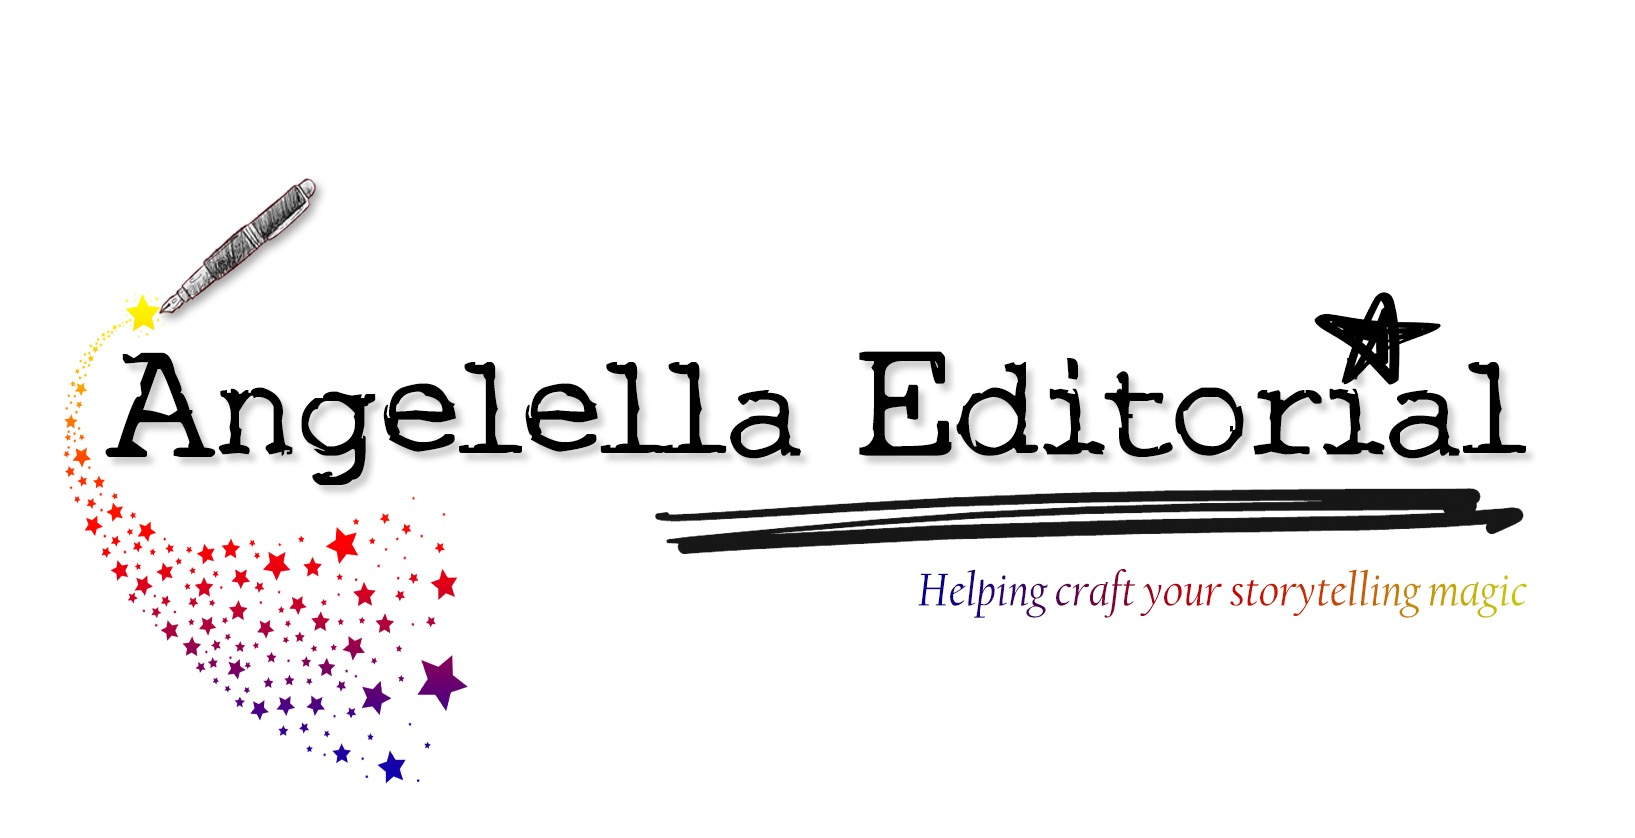 Interview With Middle-Grade Editors of Angelella Editorial